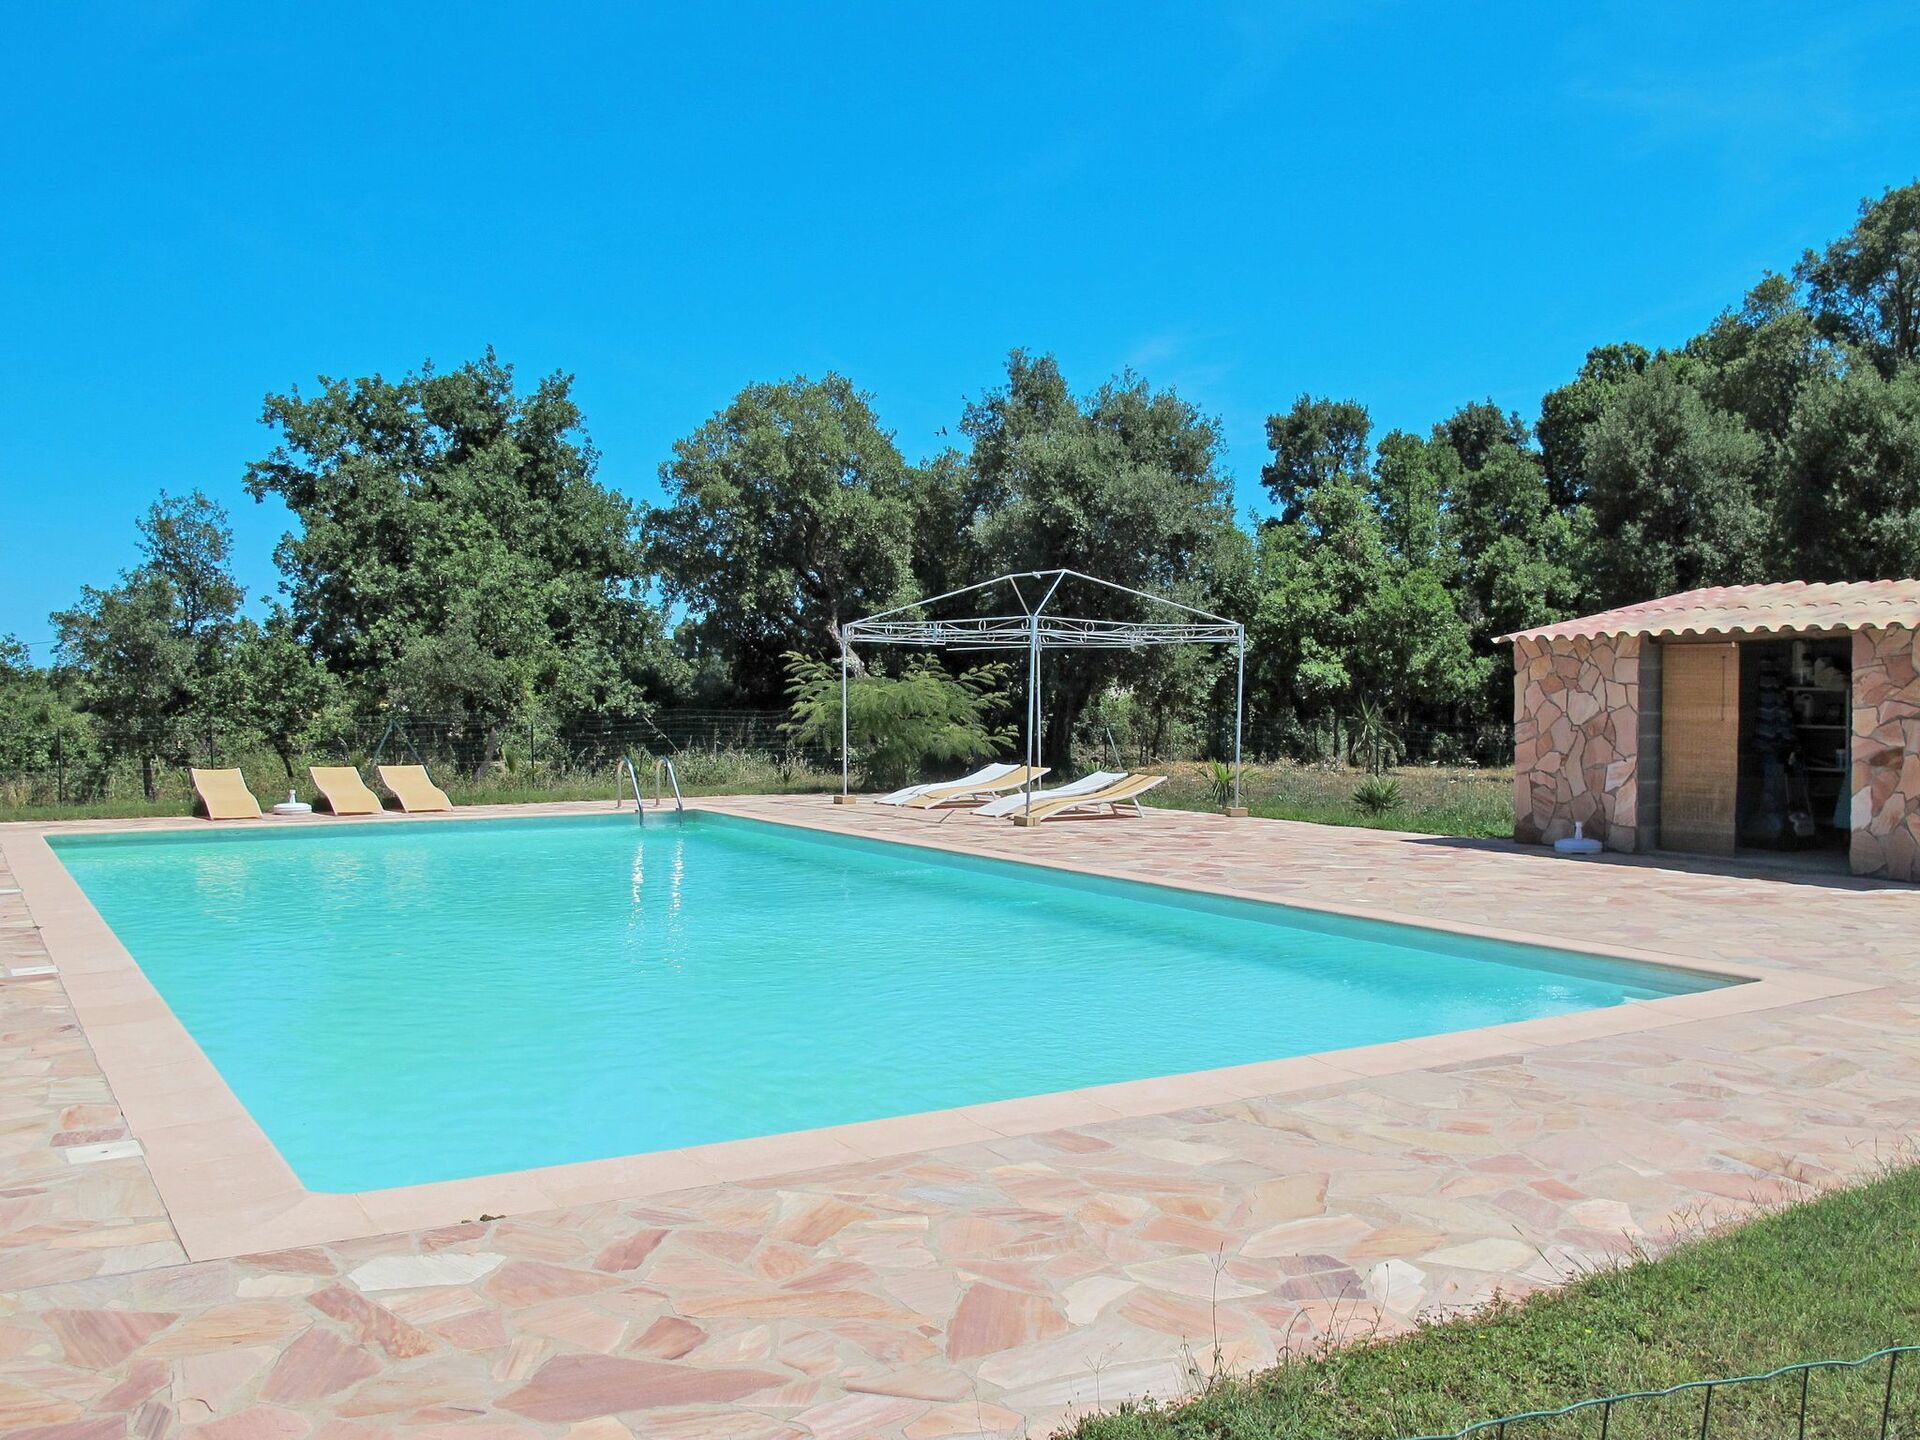 Ghisonaccia 628 Vacation Rental That Sleeps 16 People In 6 Bedrooms Located In Casa Moza Corsica France